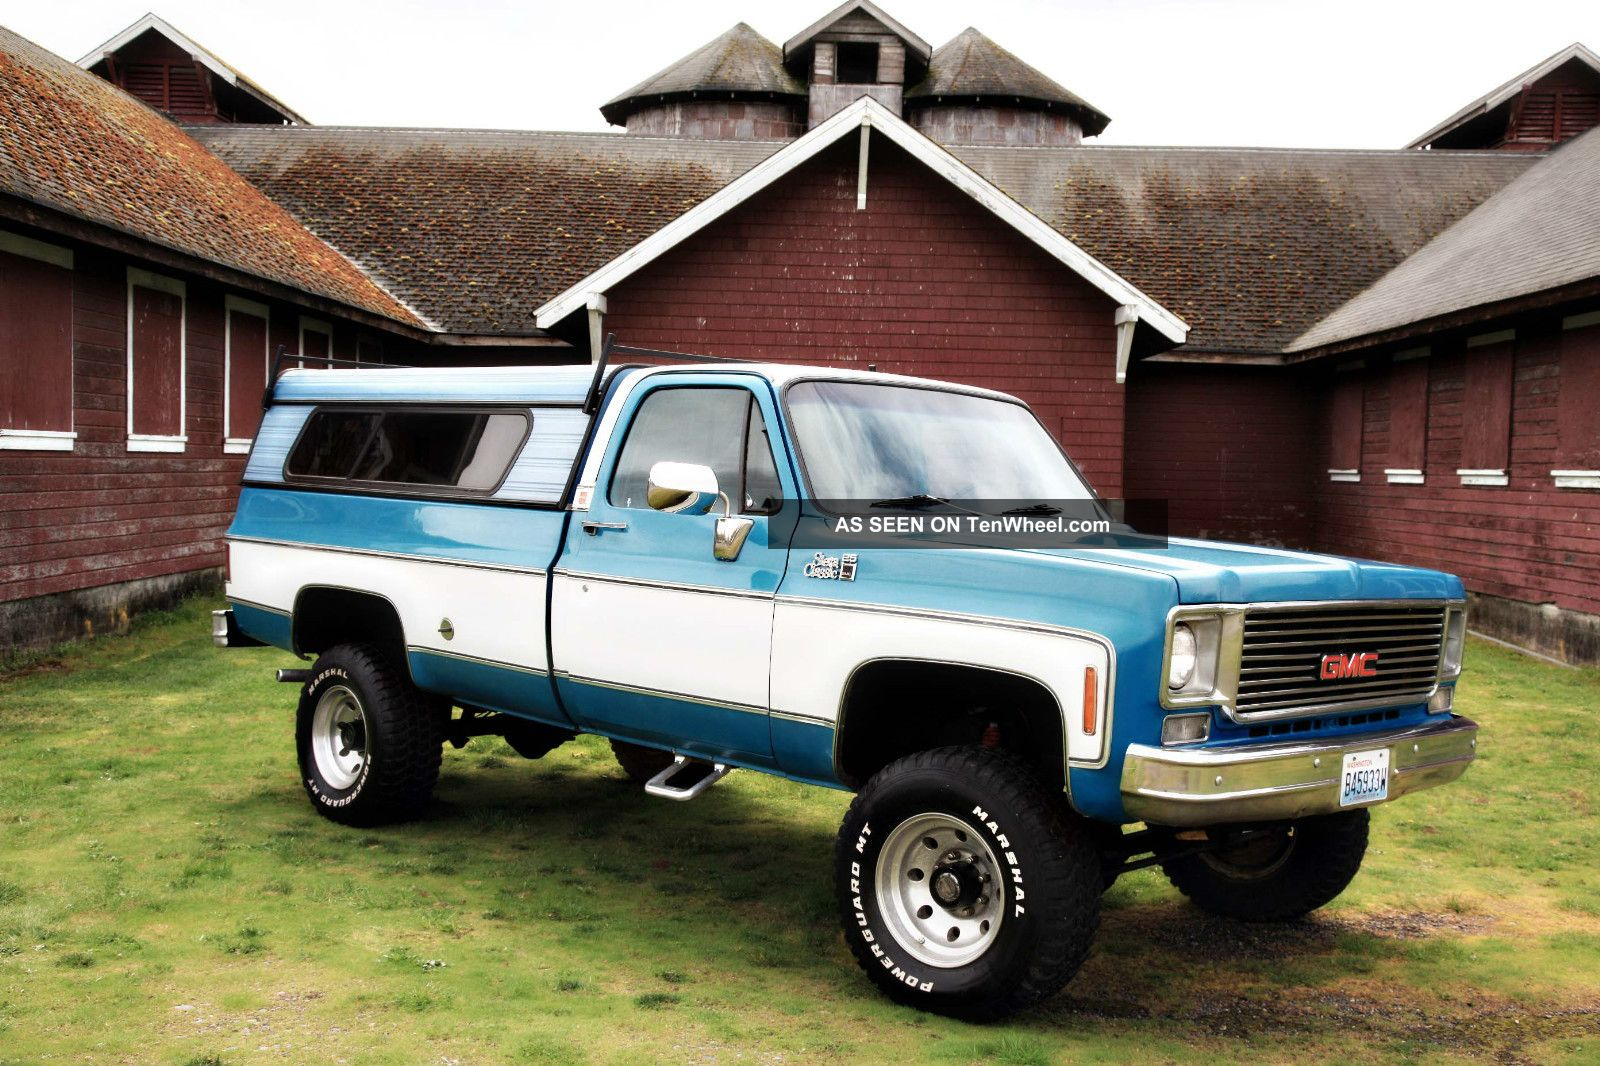 1976 gmc sierra classic k20 3 4 ton 4x4 long bed auto 4wd. Black Bedroom Furniture Sets. Home Design Ideas